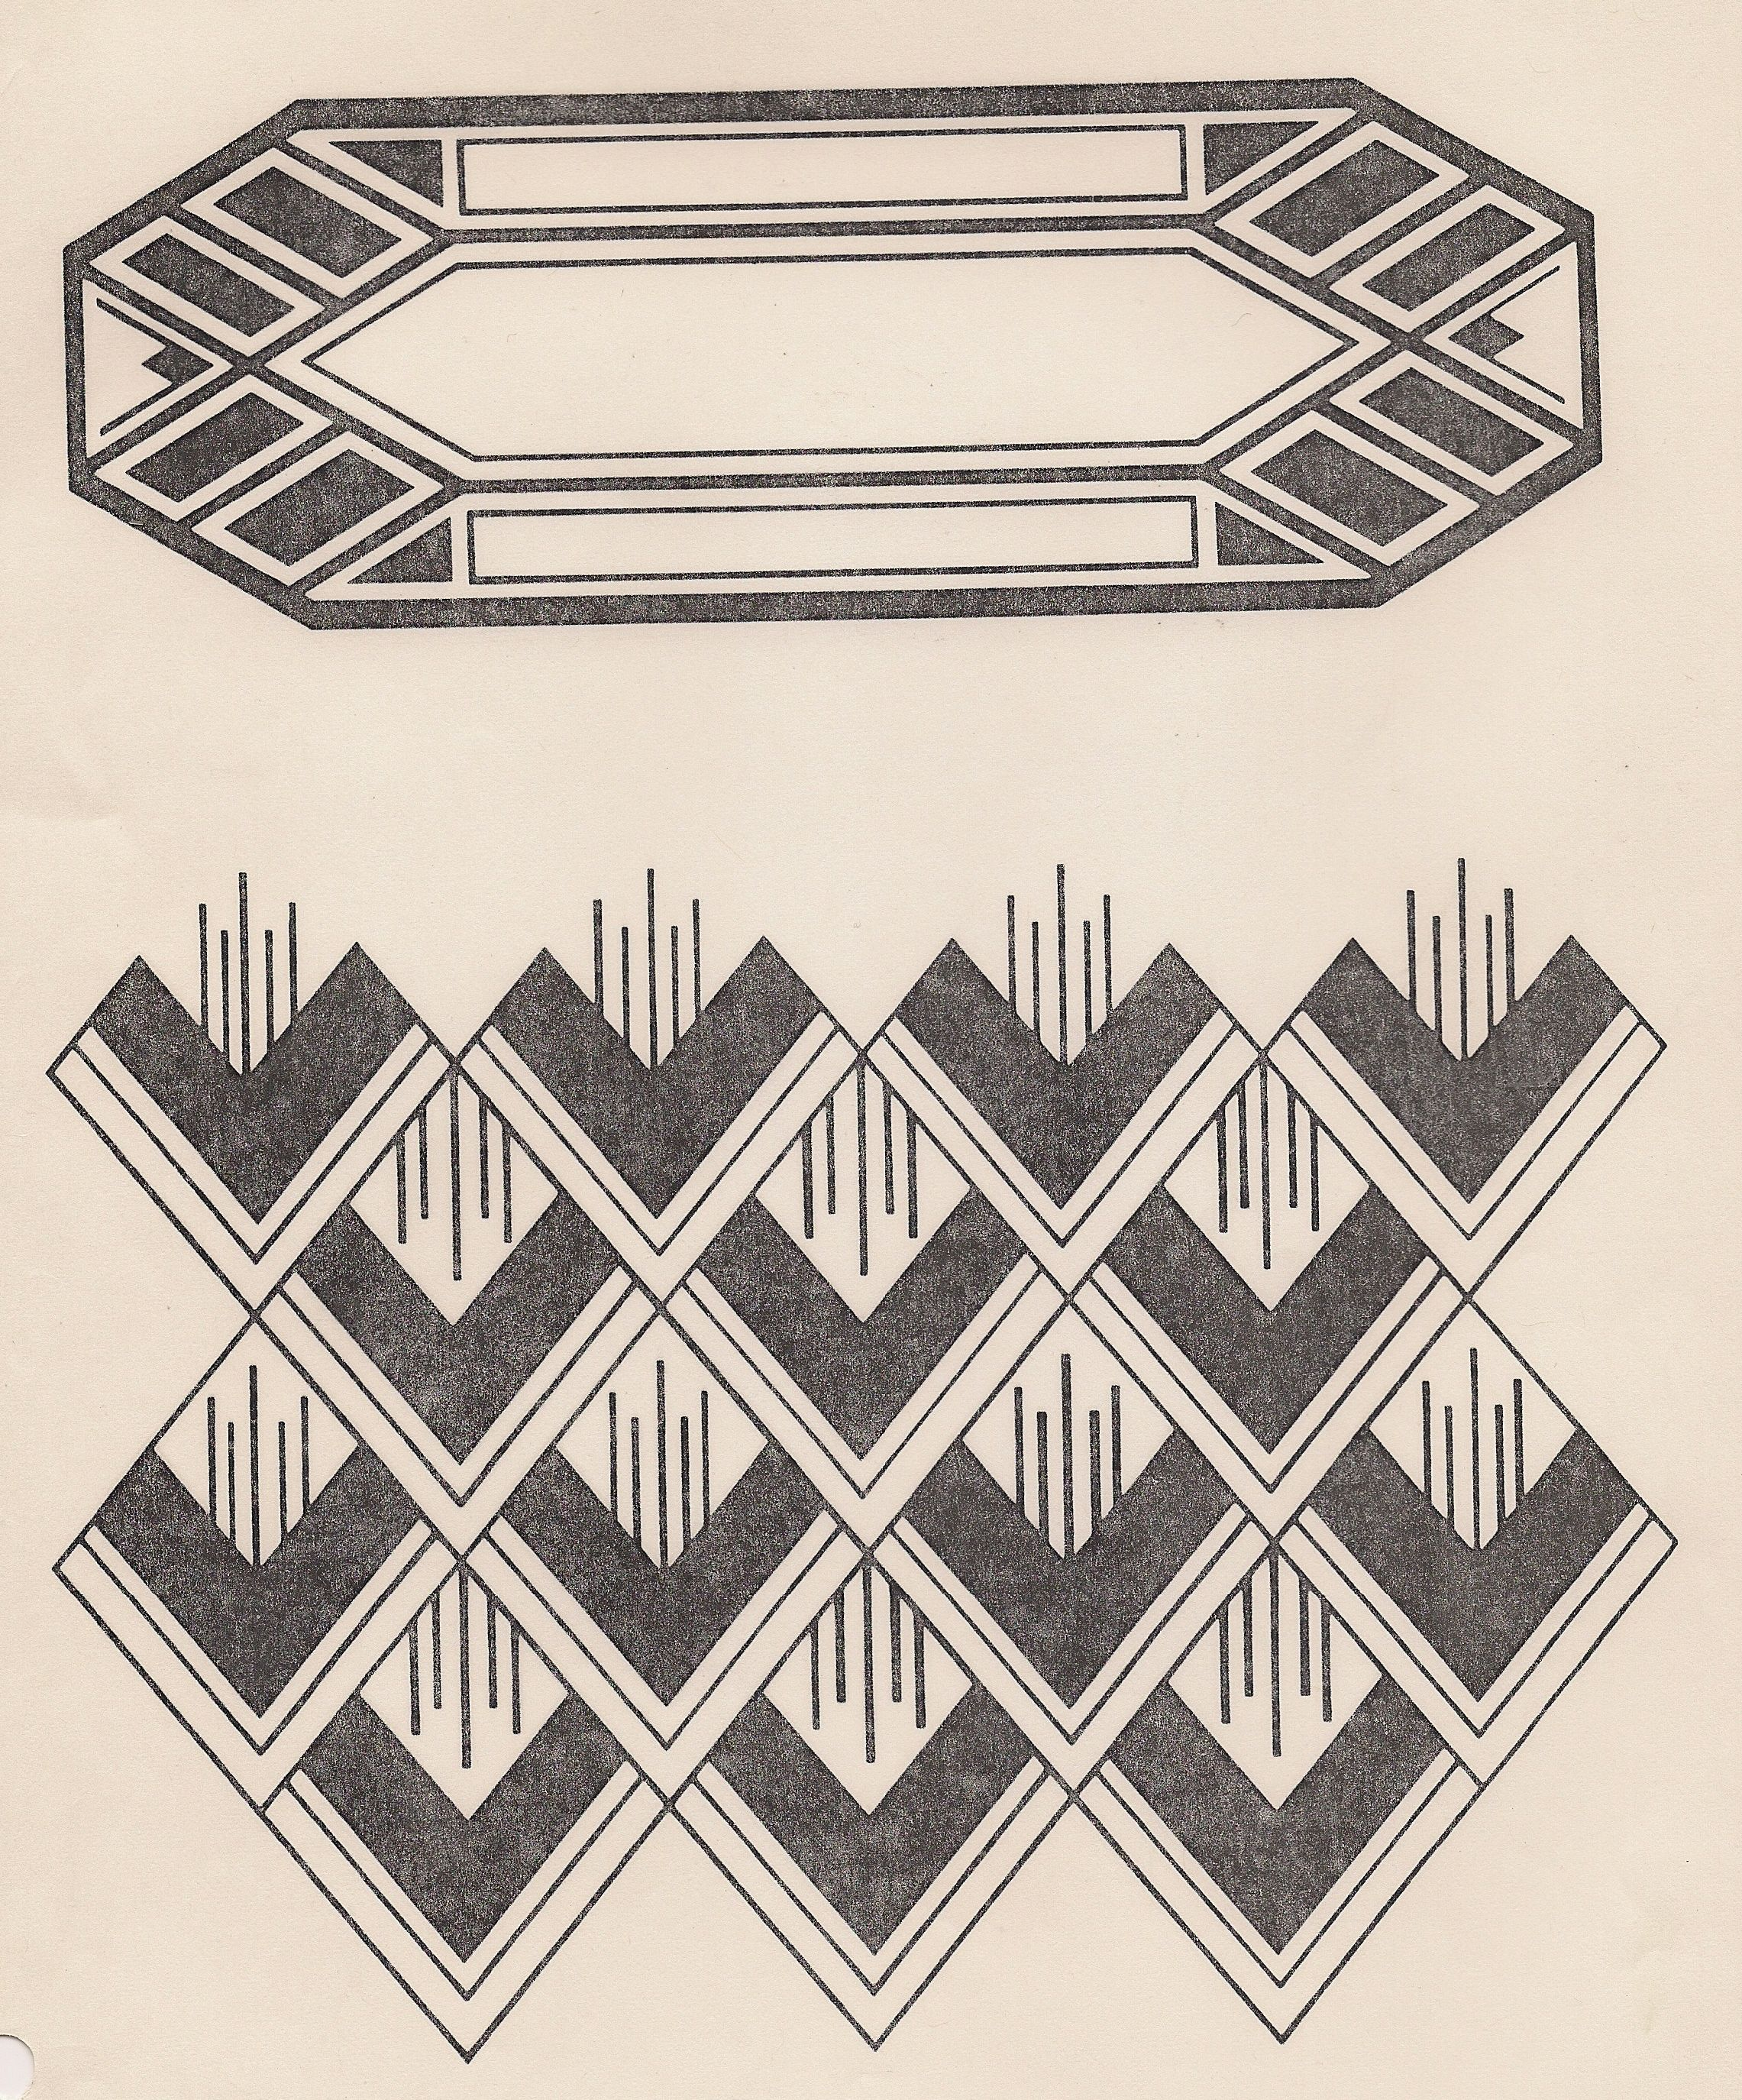 Art deco design design motifs patterns pinterest for Art deco patterns